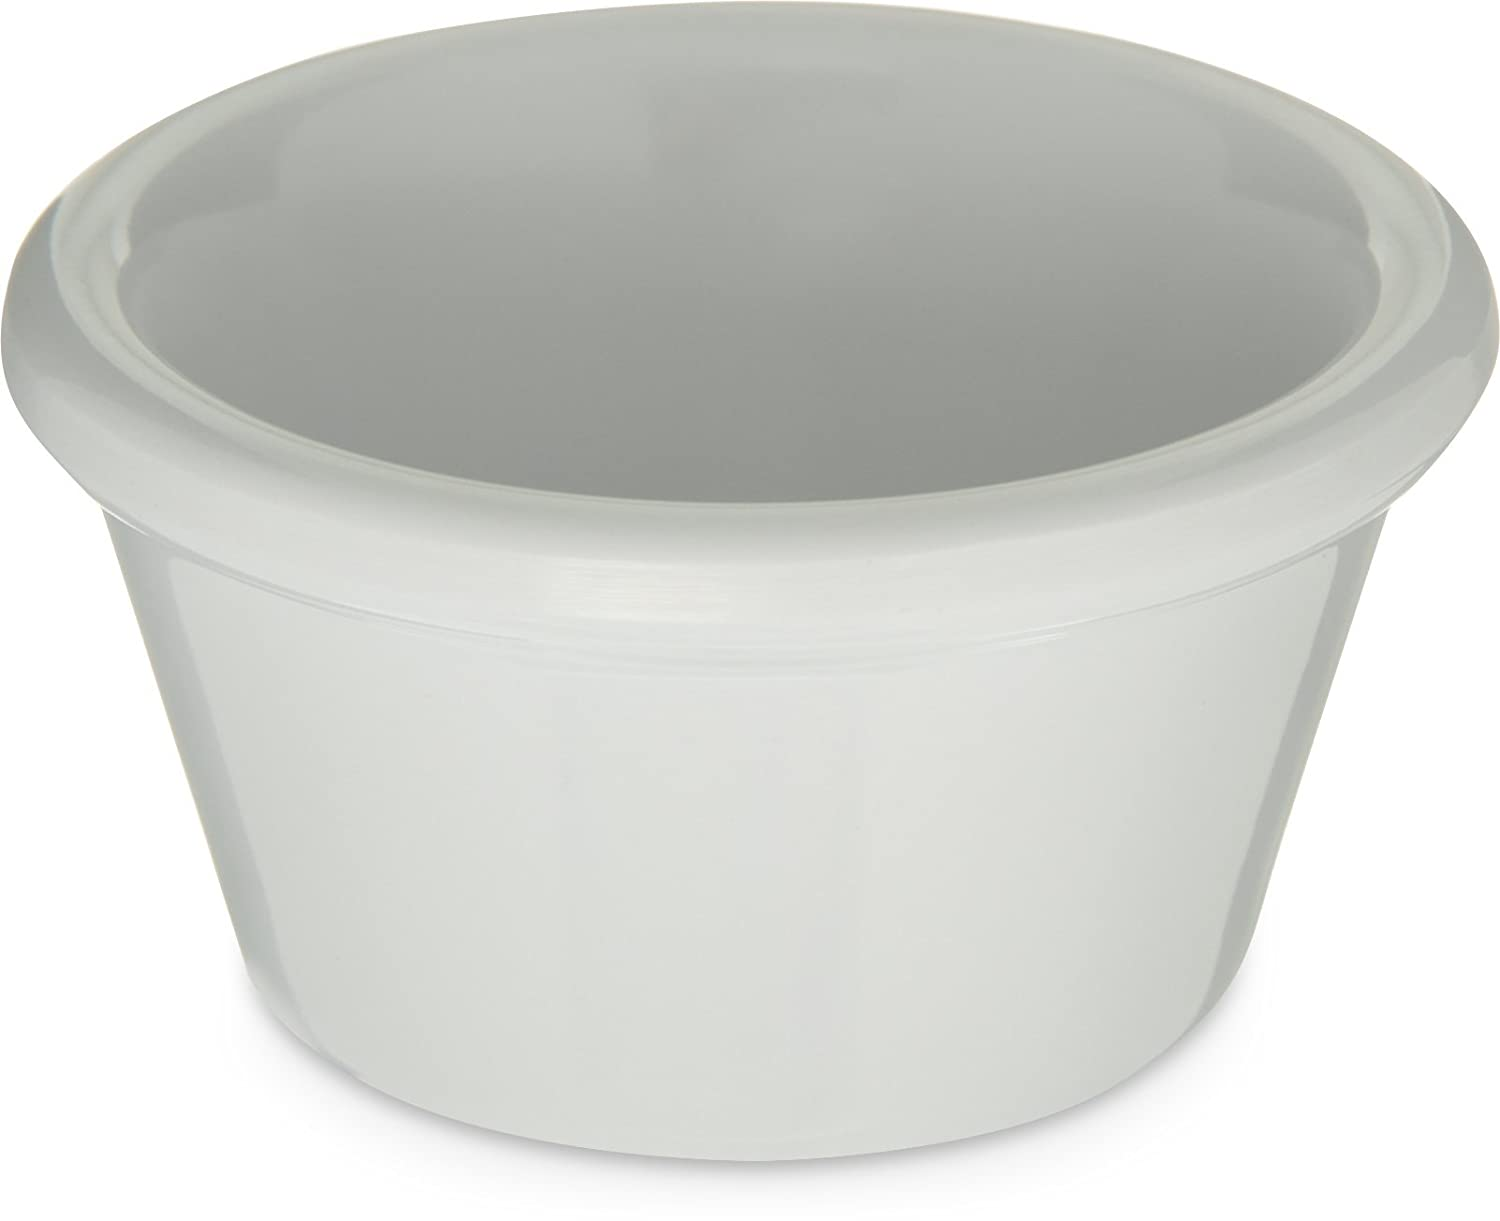 Carlisle 085202 Melamine Smooth Ramekin, 2 oz. Capacity, White (Case of 72) CARLISLE FOODSERVICE PRODUCTS